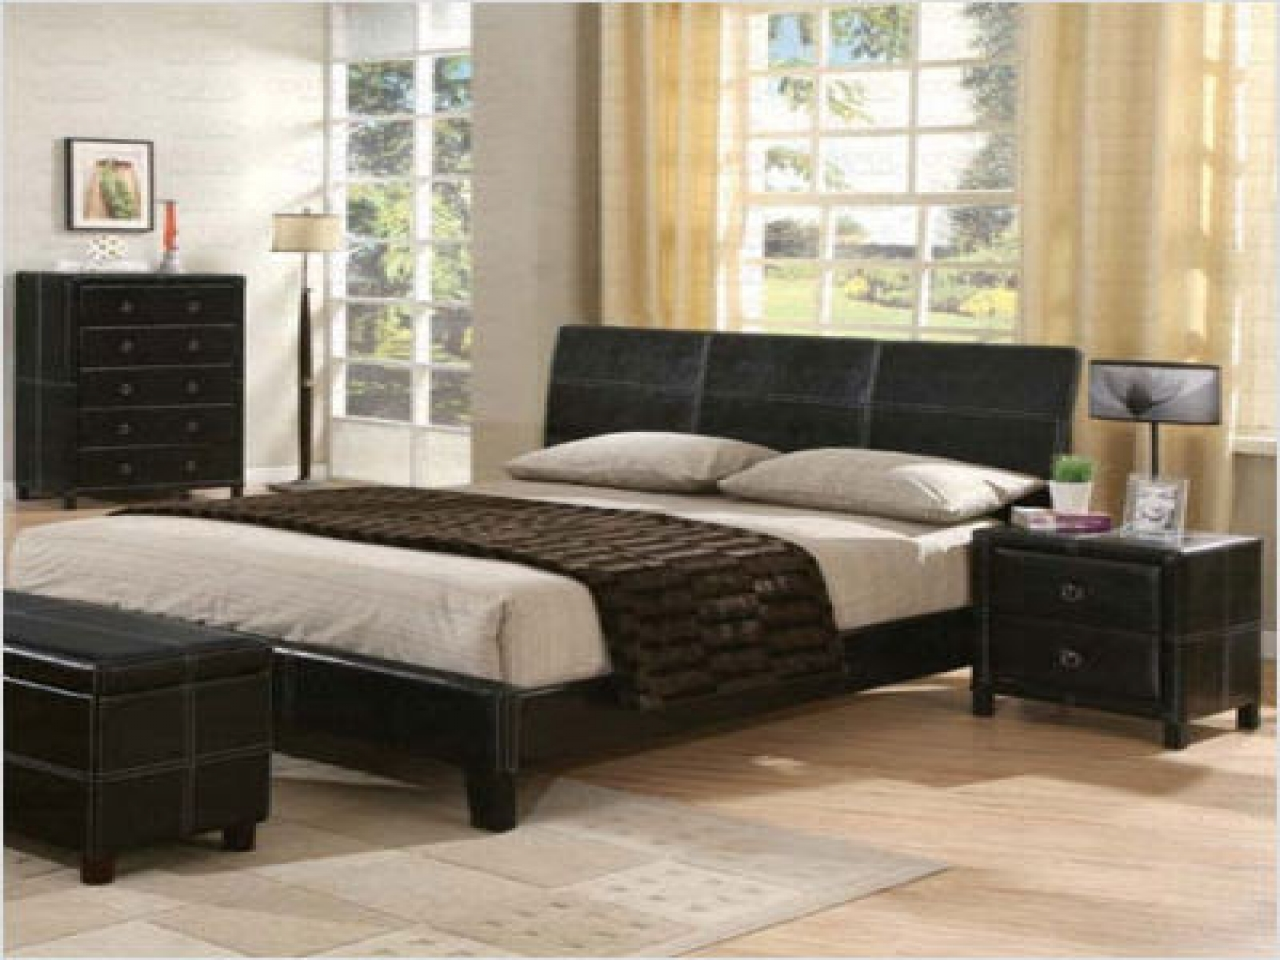 black leather bedroom furniture photo - 6